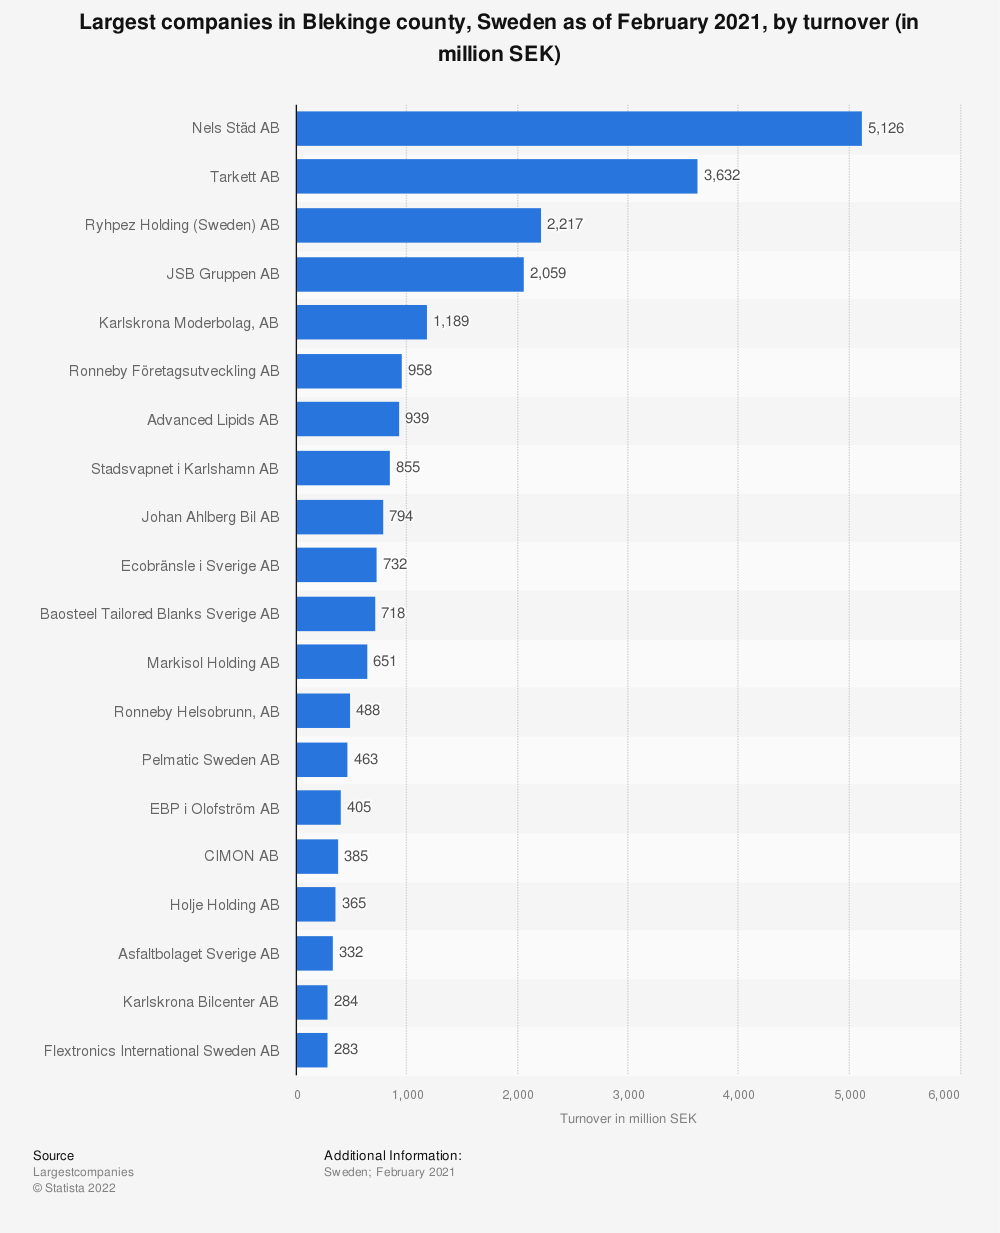 Statistic: Largest companies in Blekinge county, Sweden as of February 2021, by turnover (in million SEK) | Statista